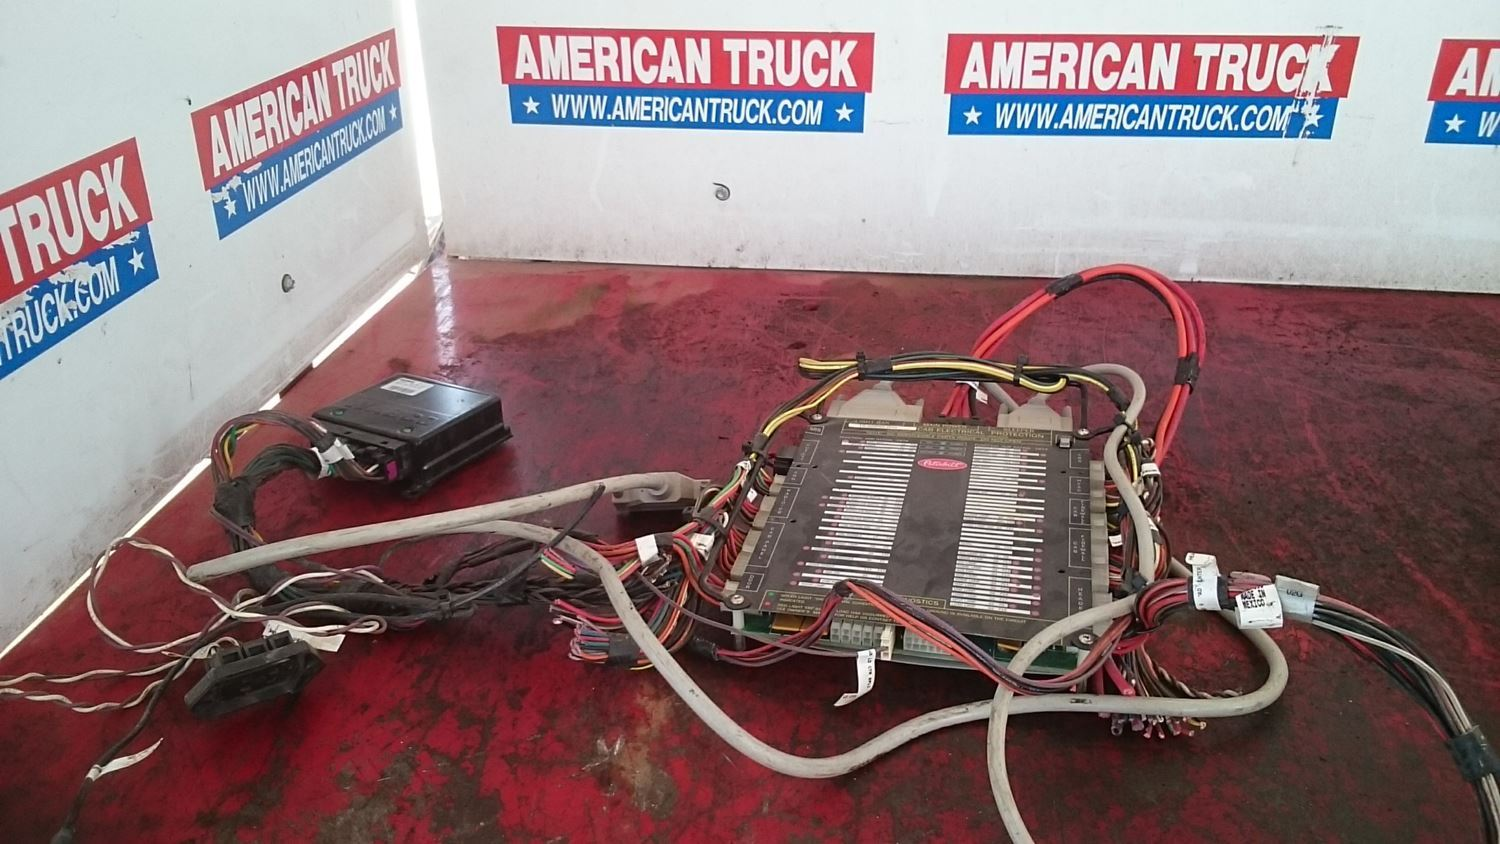 Watch furthermore Watch as well 2002 Honda Crv 2 2 Fuse Box Diagram further 1999 Honda Accord Fuse Box Diagram also 2016 Ford F150 Tail Light Wiring Diagram. on 2012 peterbilt wiring diagram